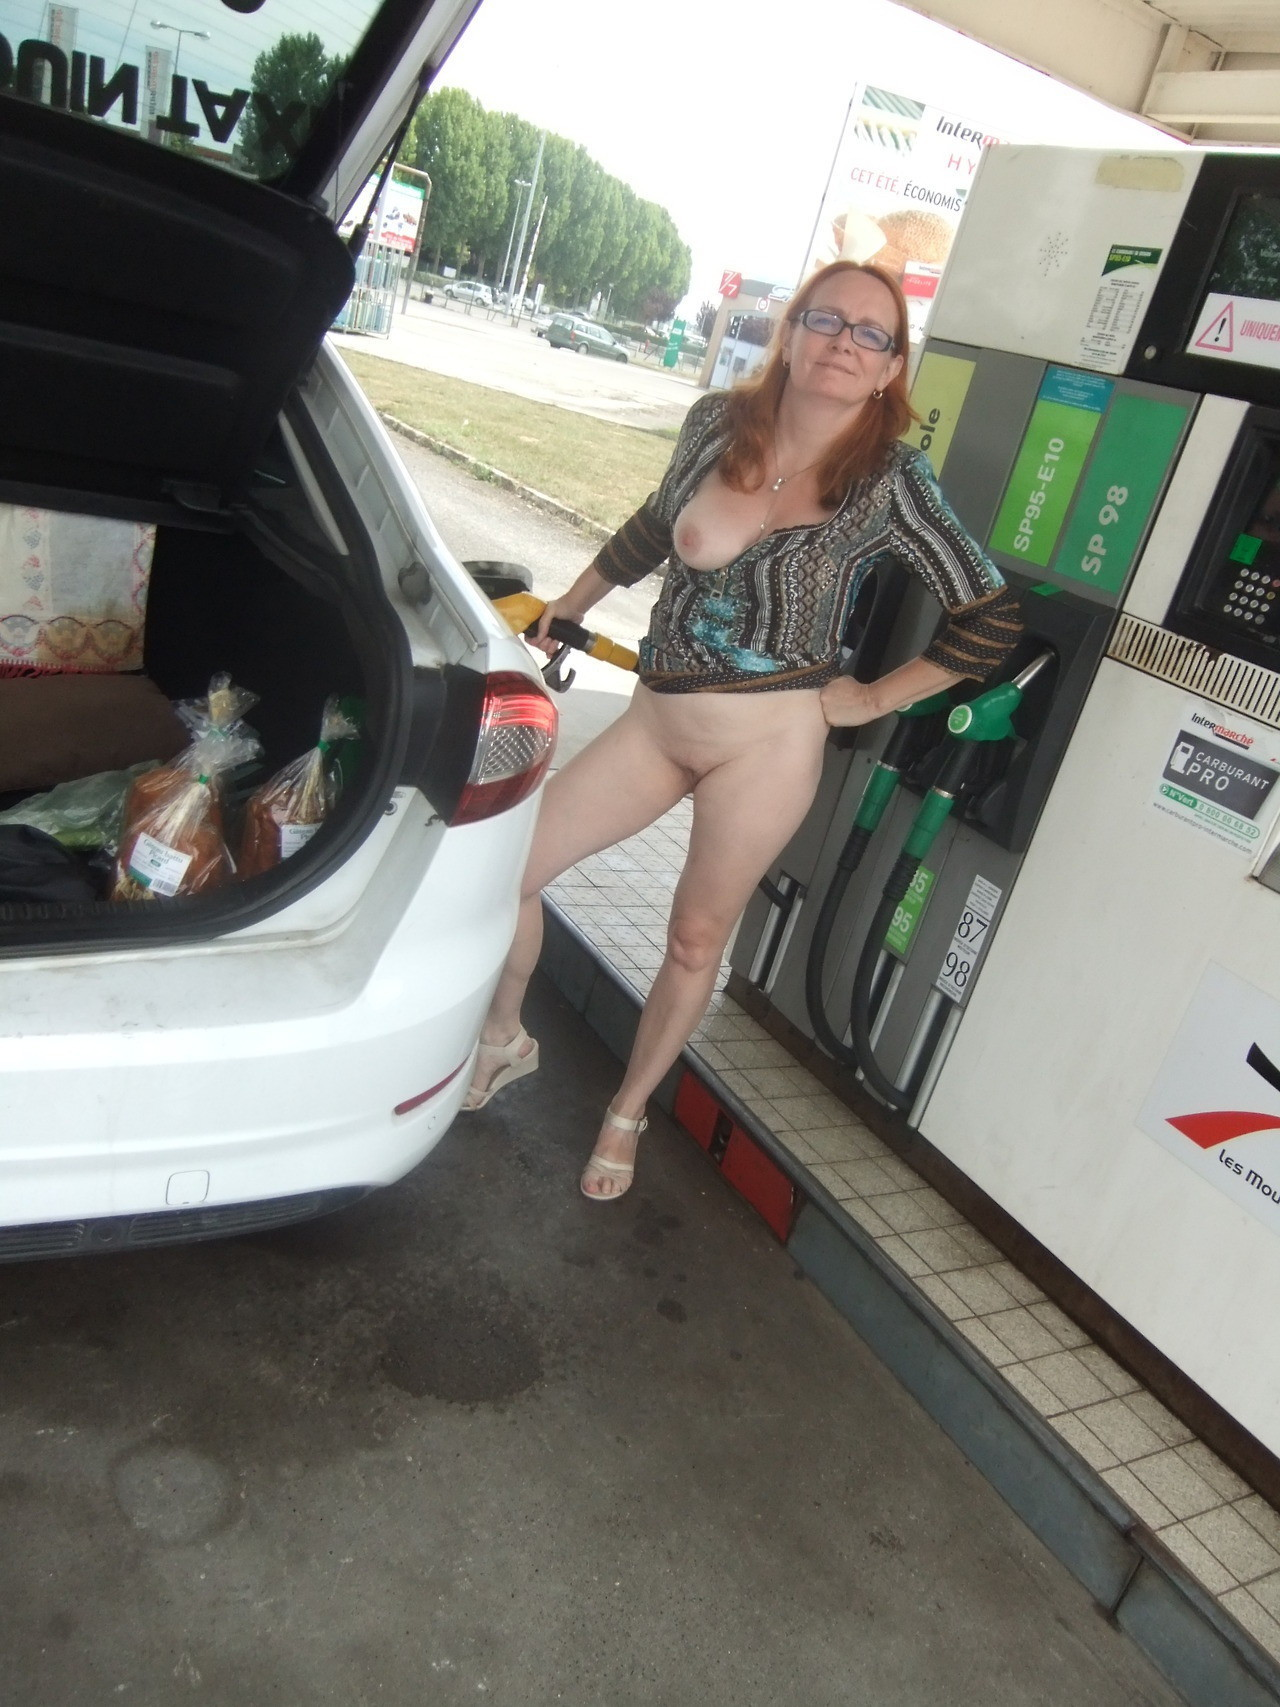 Flashing Tits While Pumping Gas Free Porn Pics Youporn